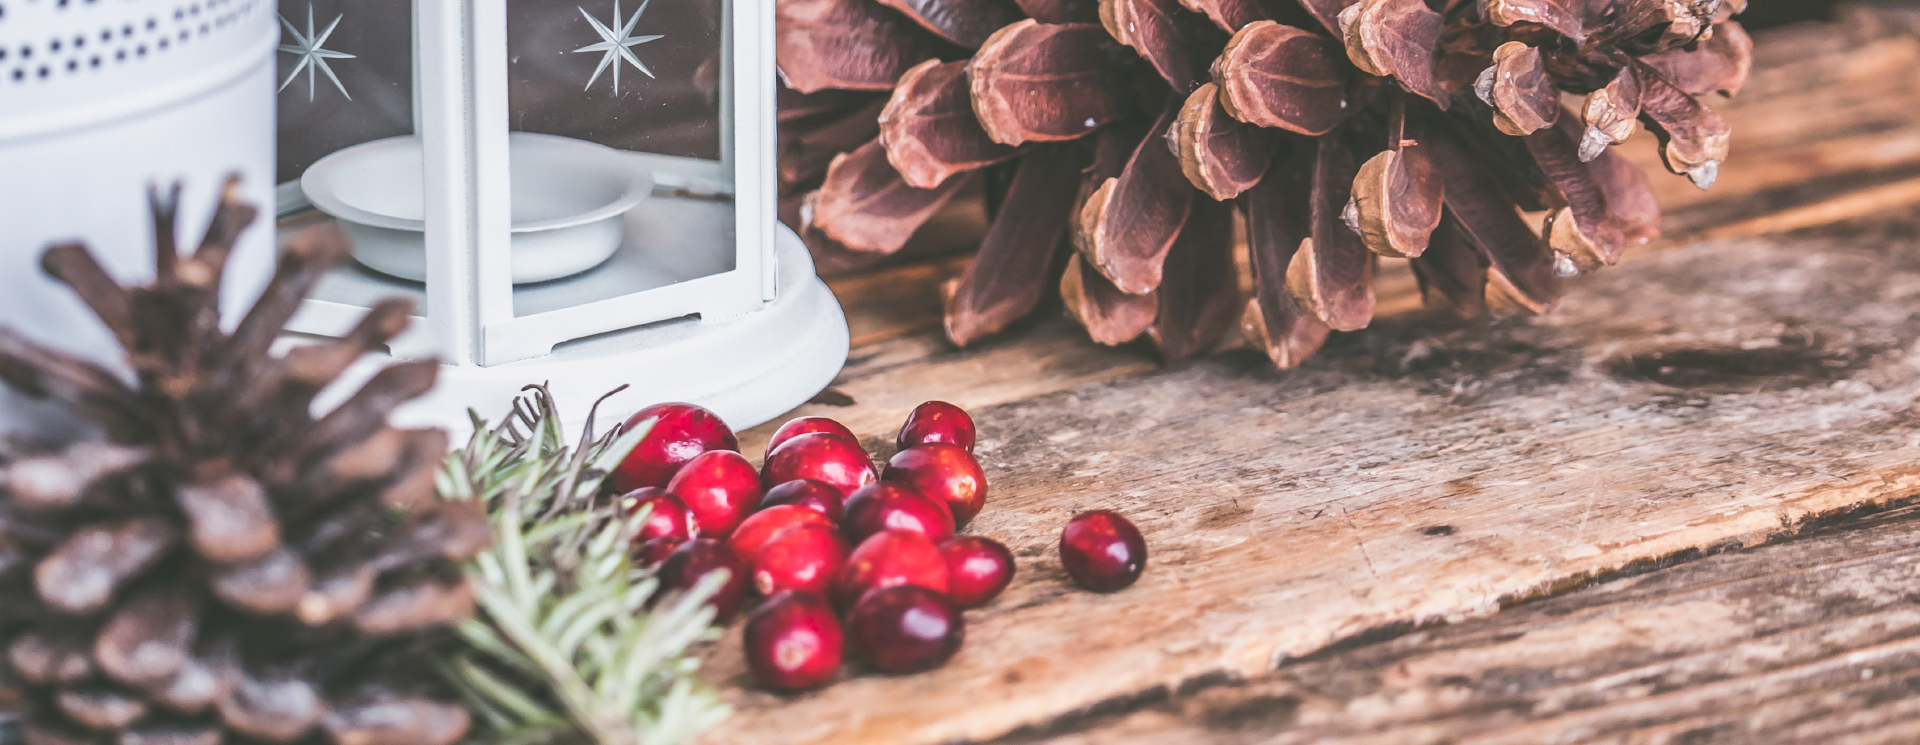 5 Ways to Simplify Holiday Decorating